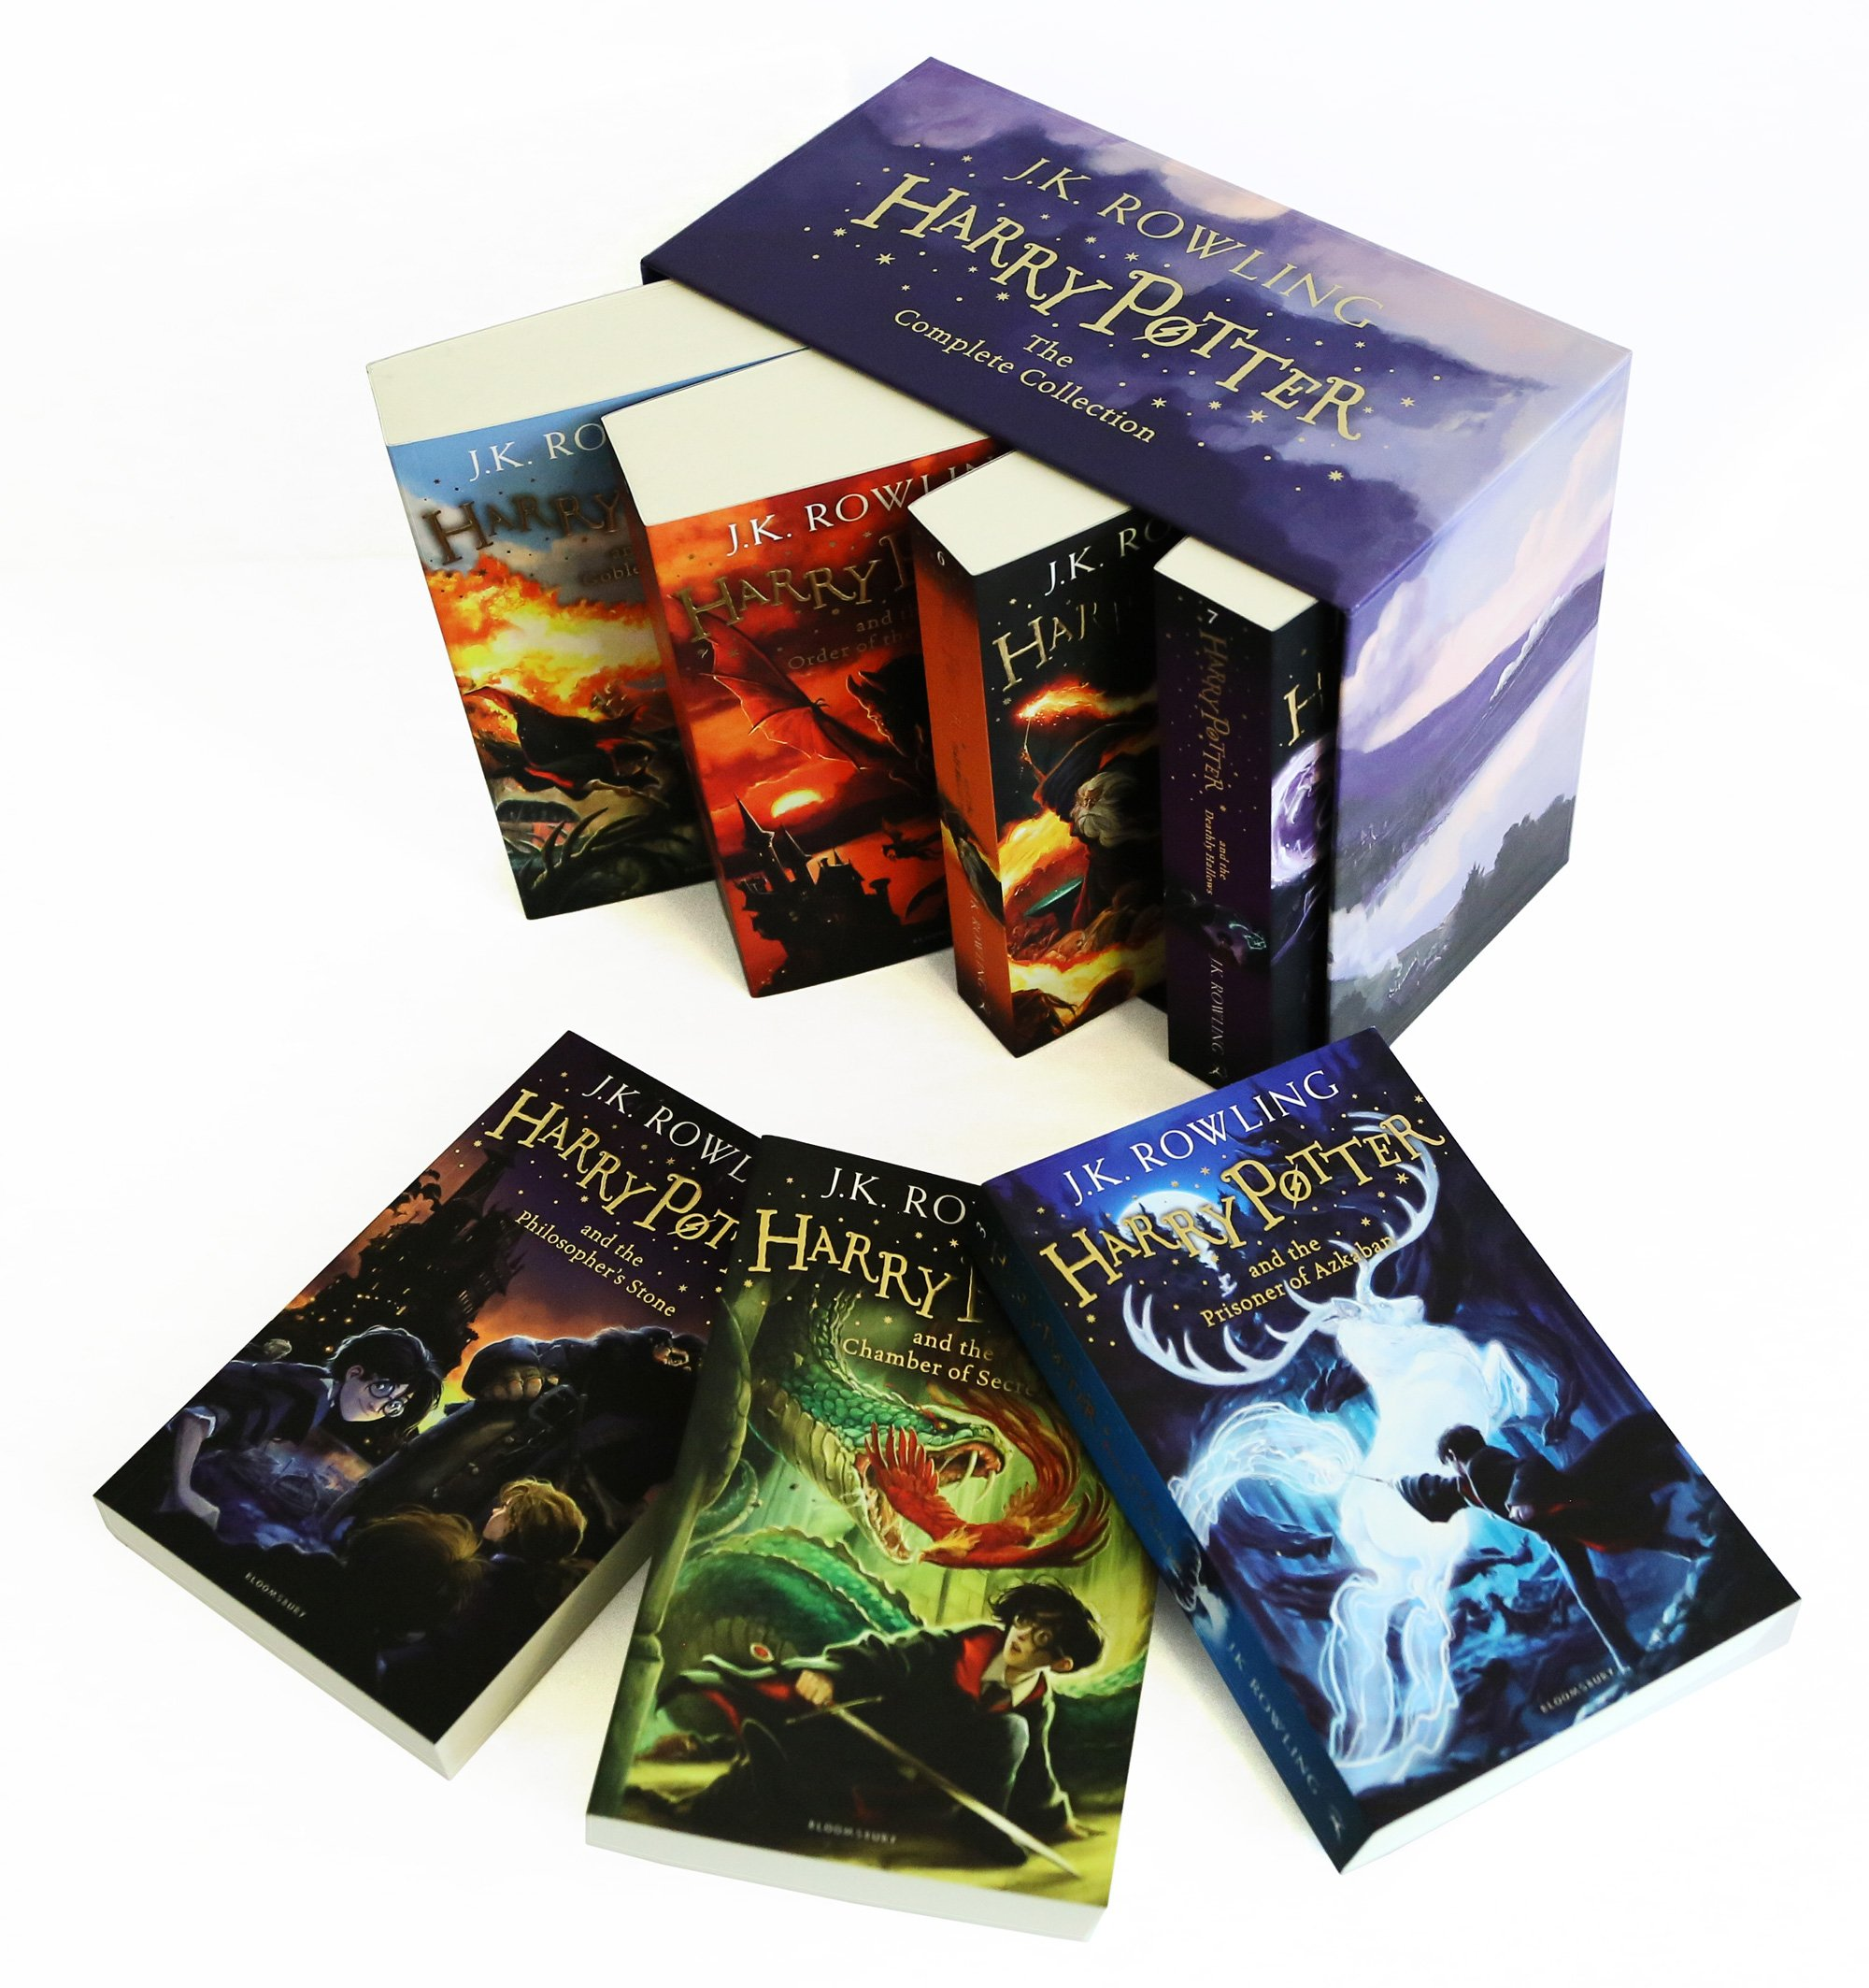 Harry Potter Book Gift Set : The complete harry potter books collection boxed gift